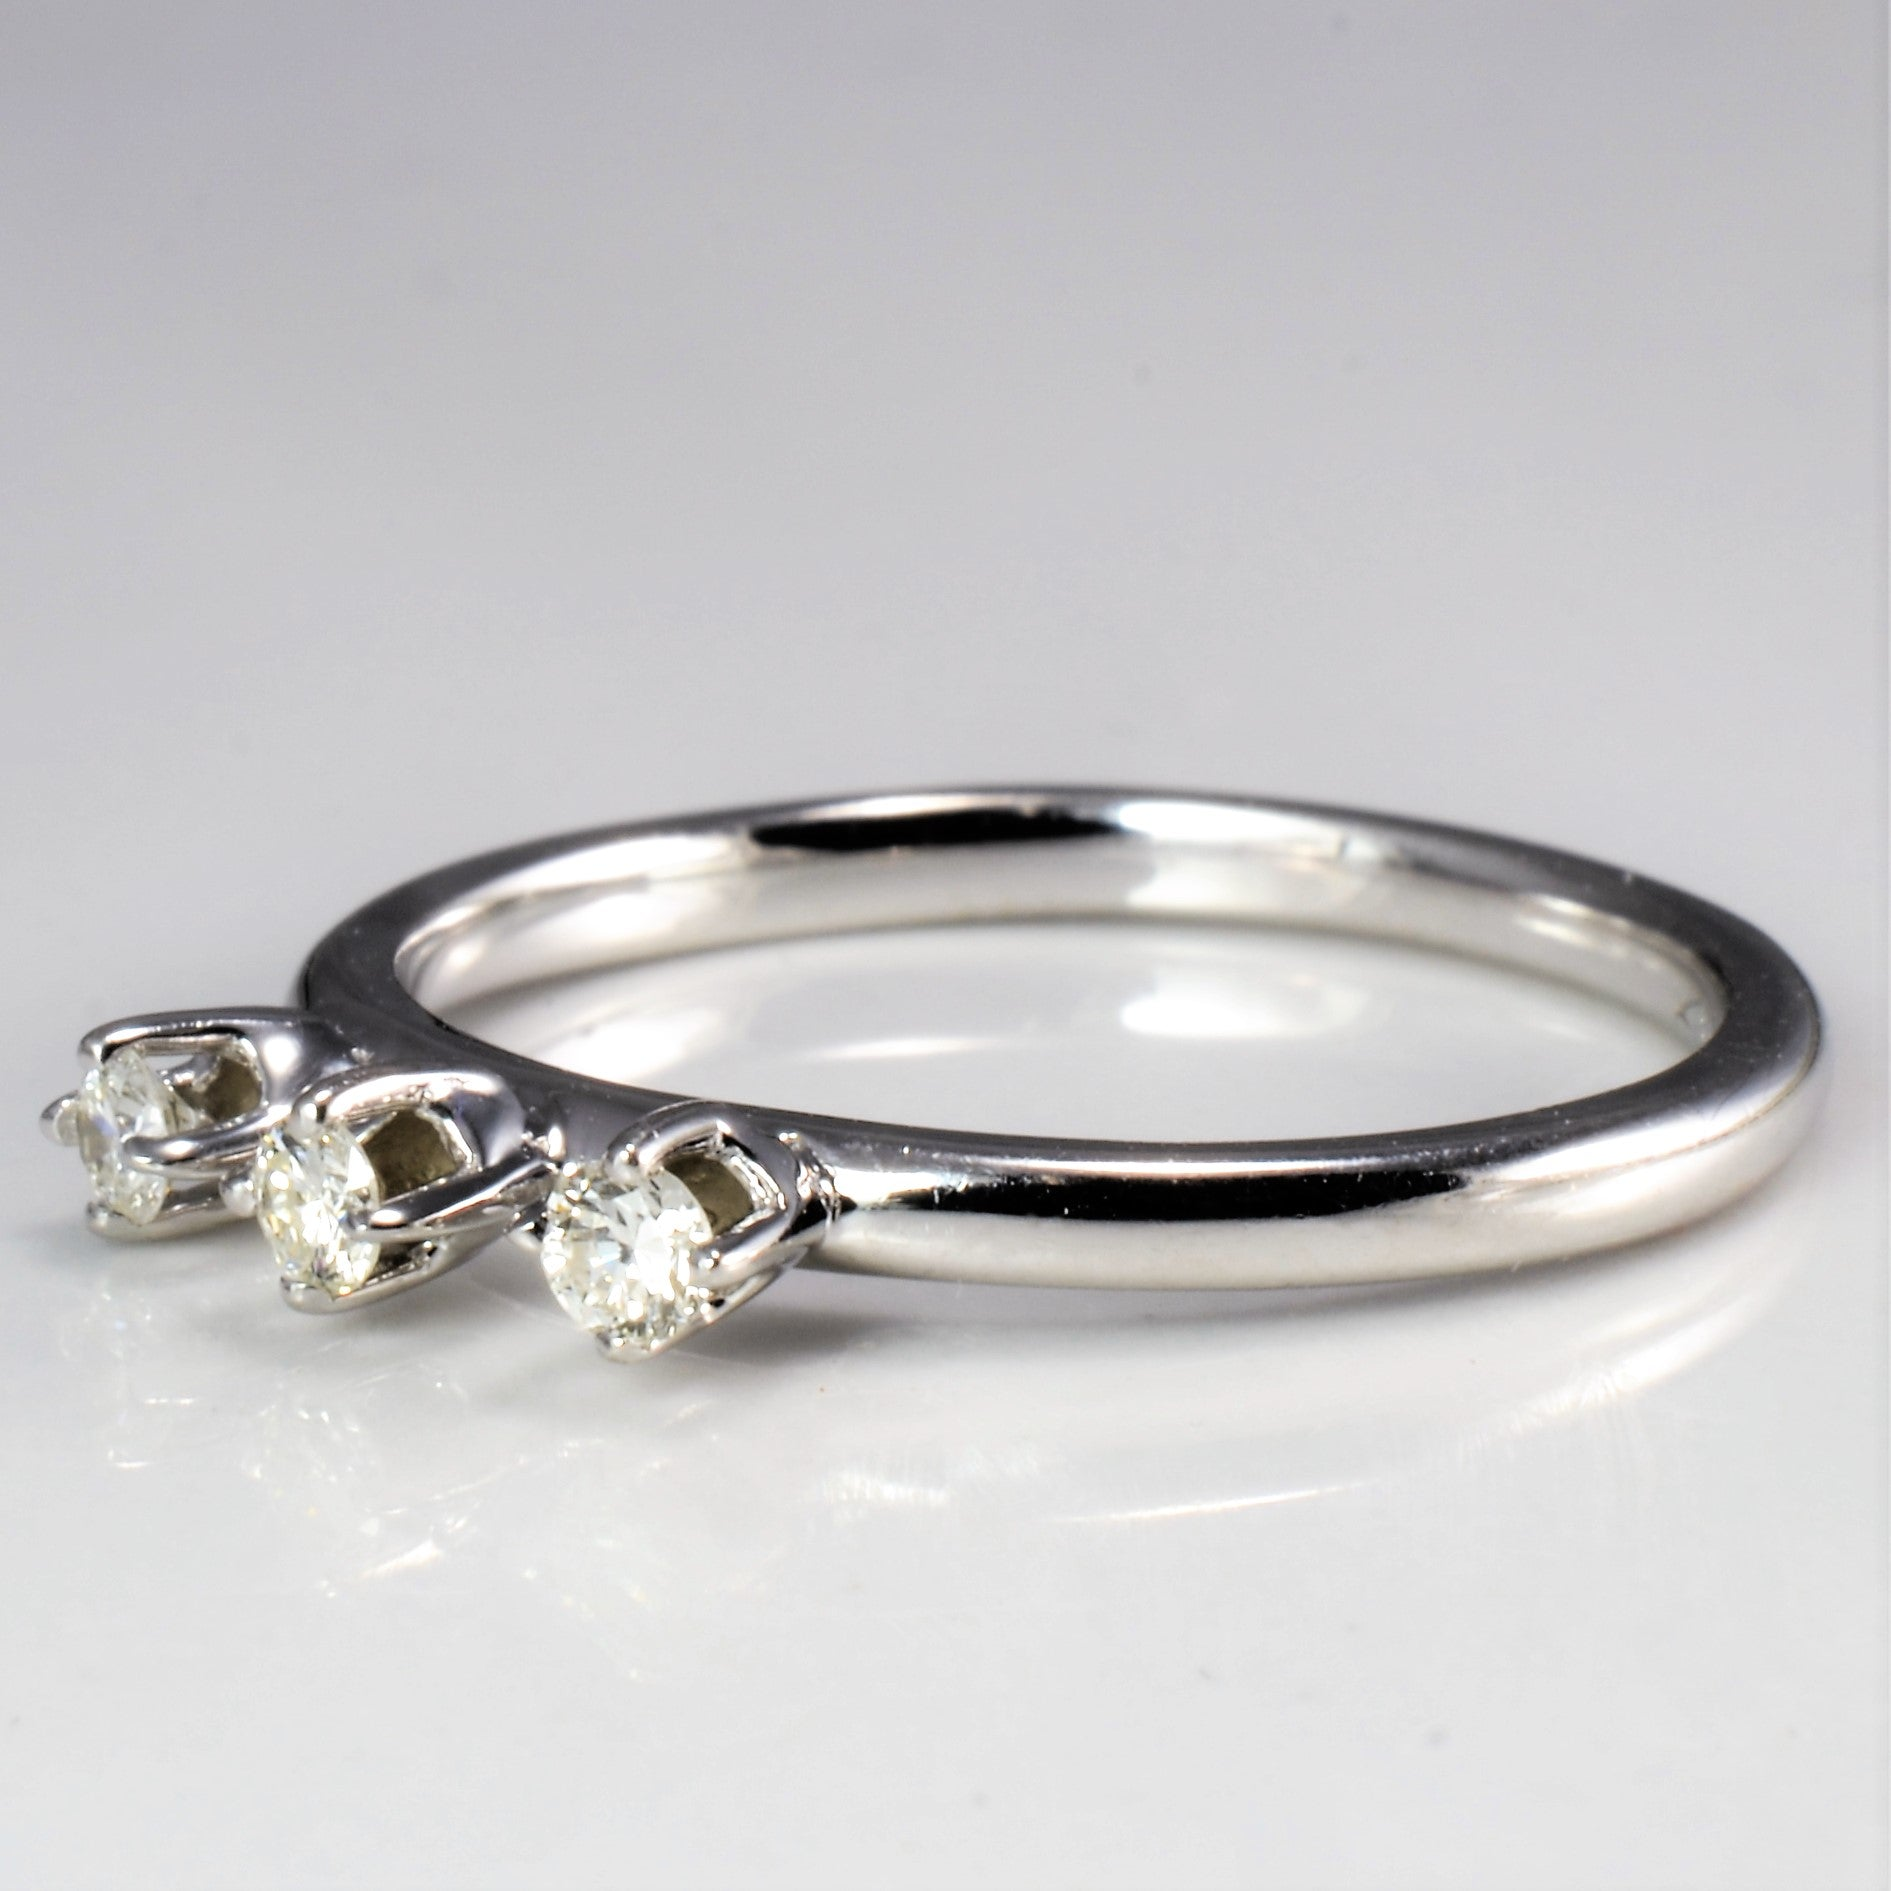 Three Stone Diamond Ring | 0.12 ctw, SZ 6 |